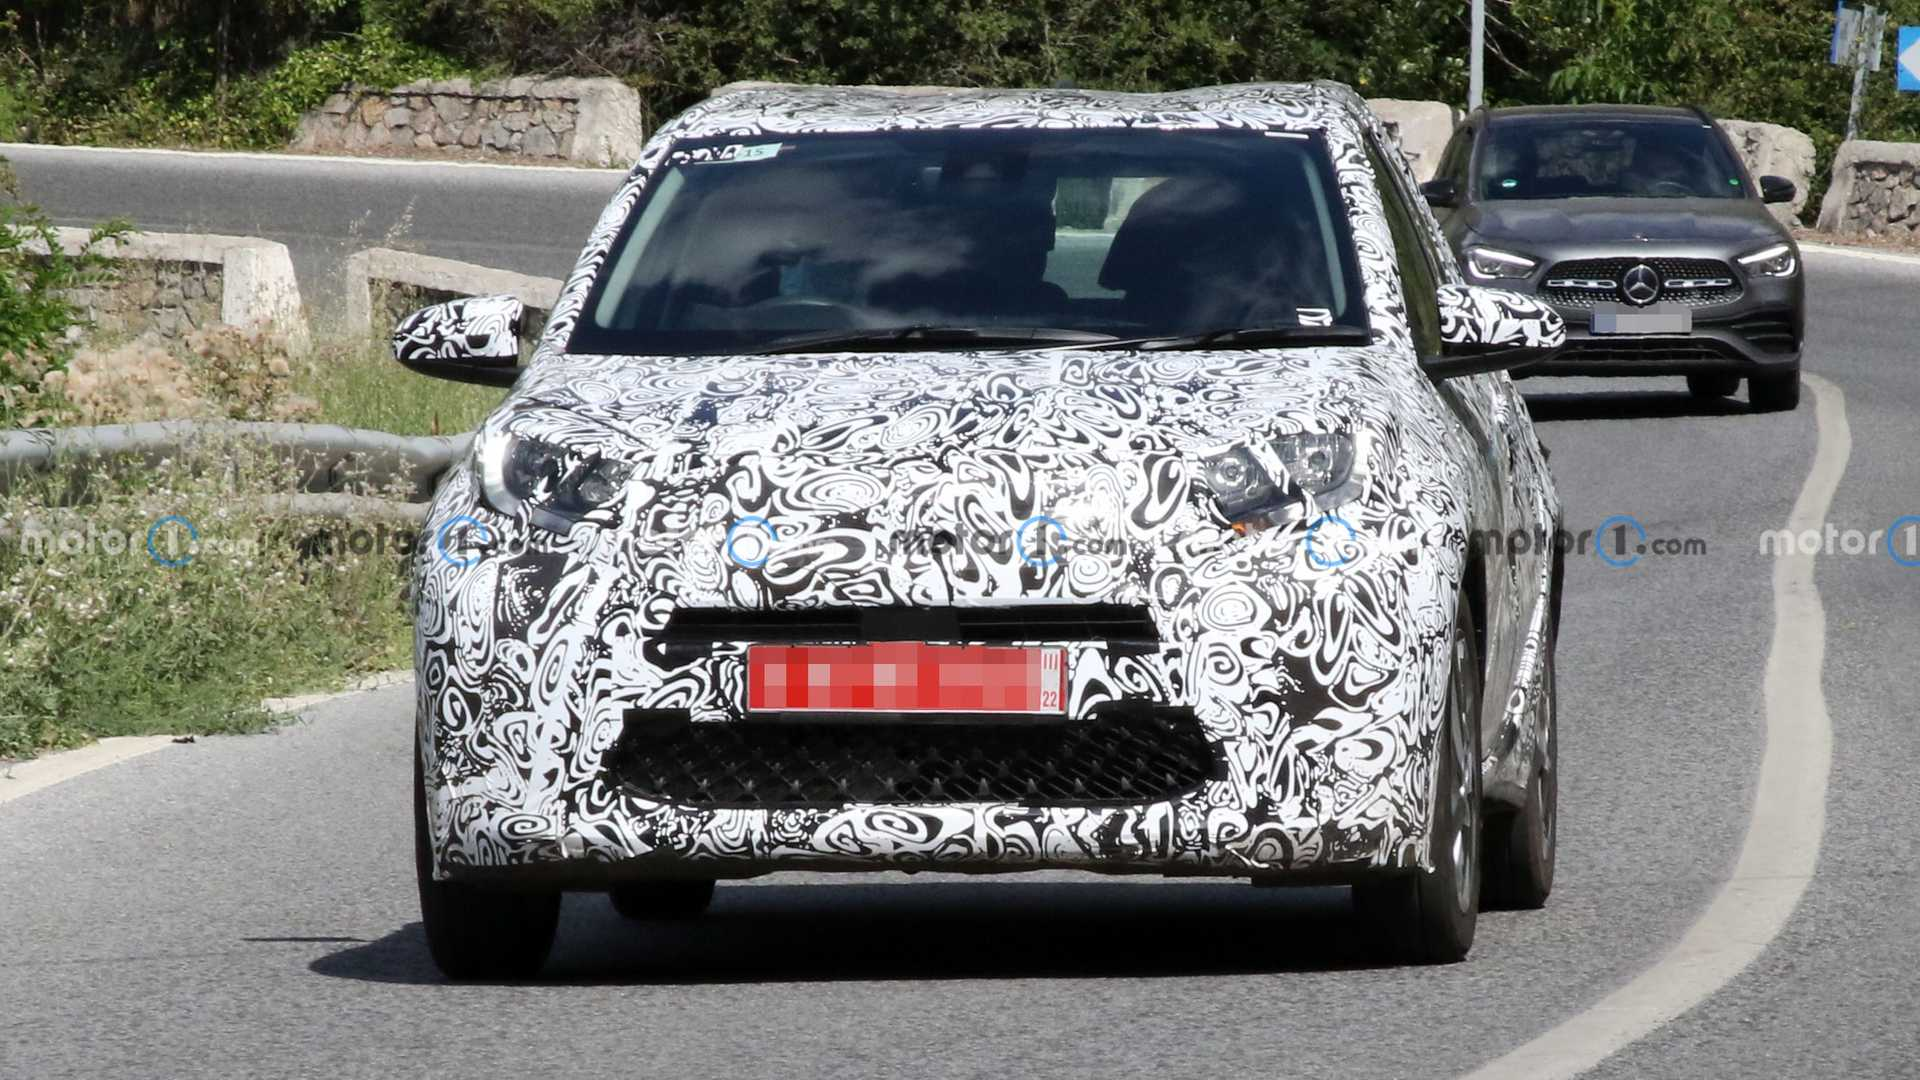 A pre-production example of the new Aygo was first spotted on the roads this winter, and in March, Toyota officially confirmed working on it. Some new photos were made this week, so let's have a look.